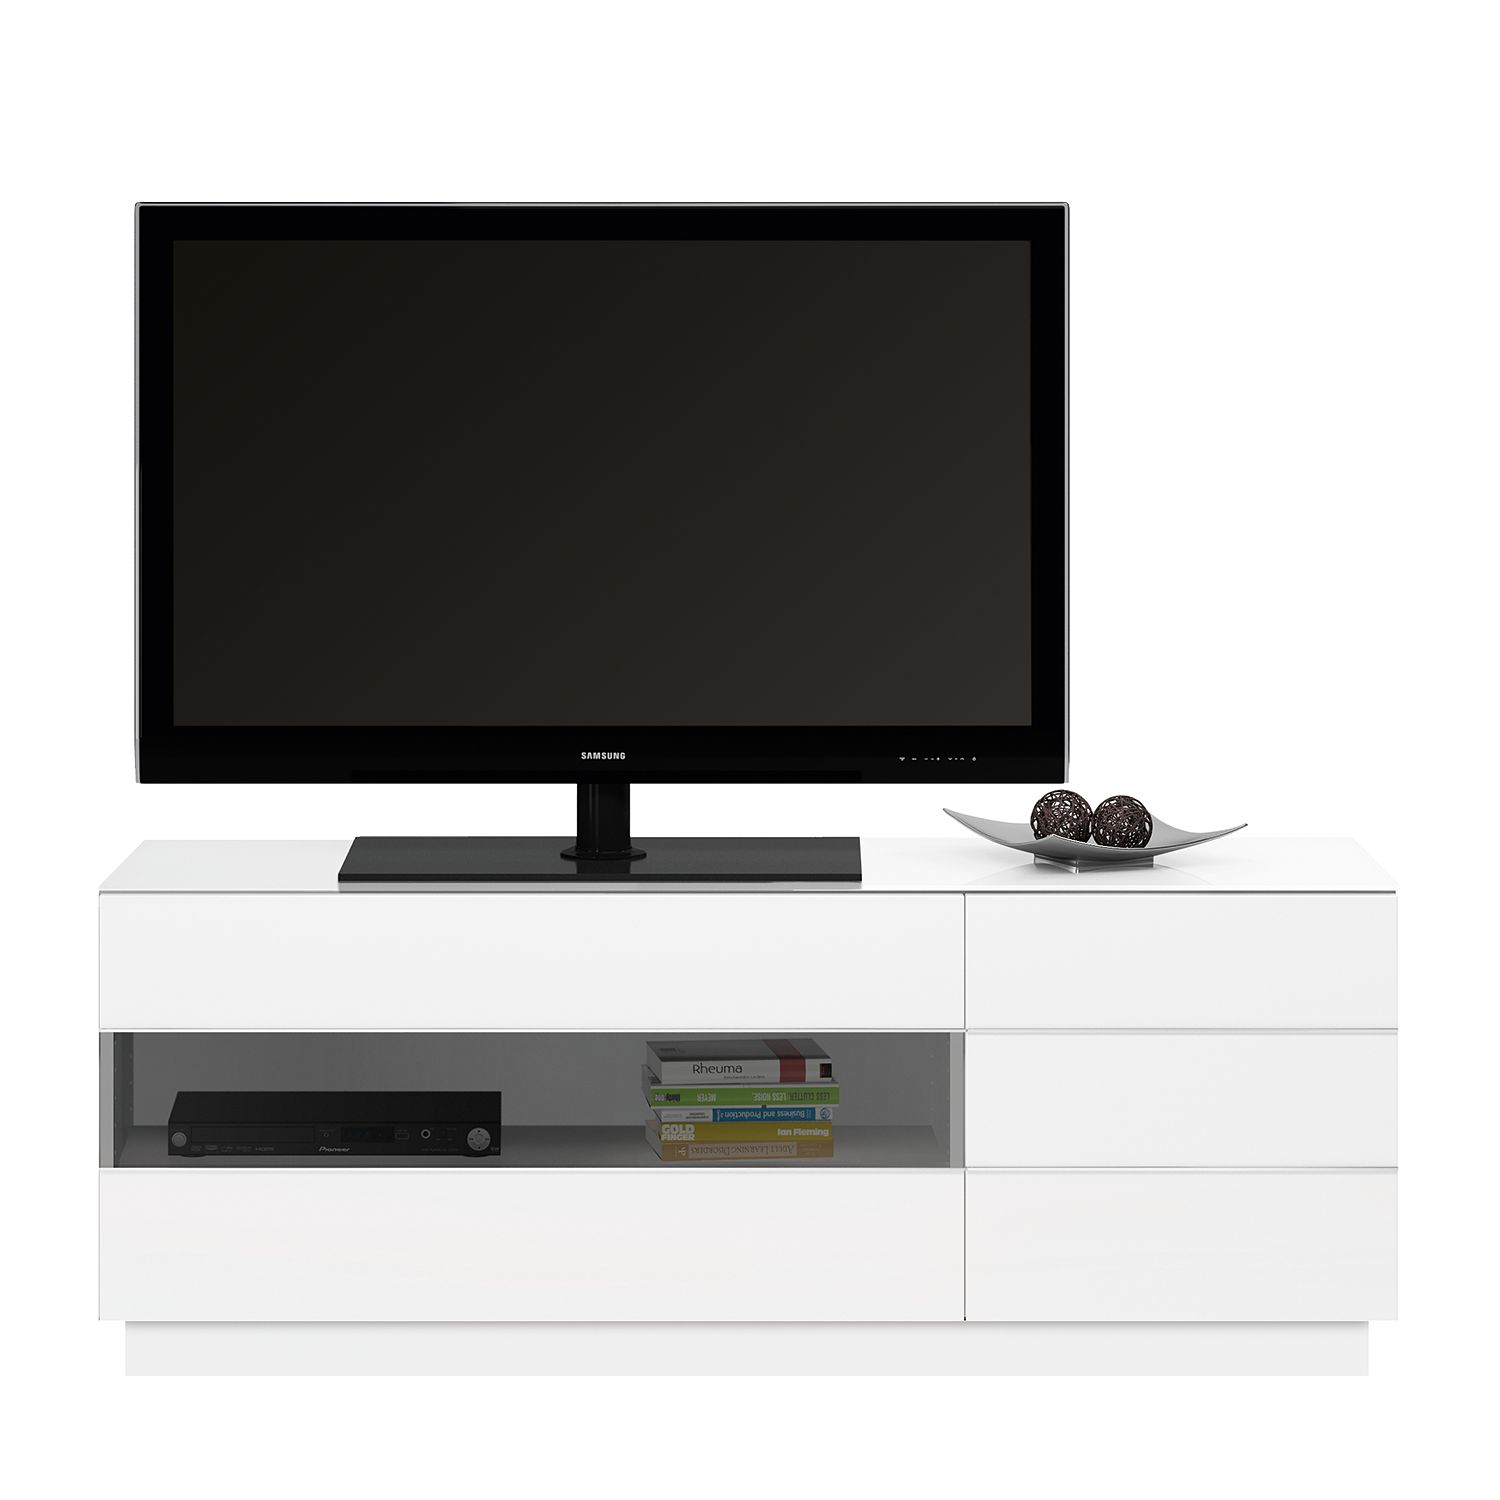 Meuble TV TL 6153 - Blanc brillant, Jahnke